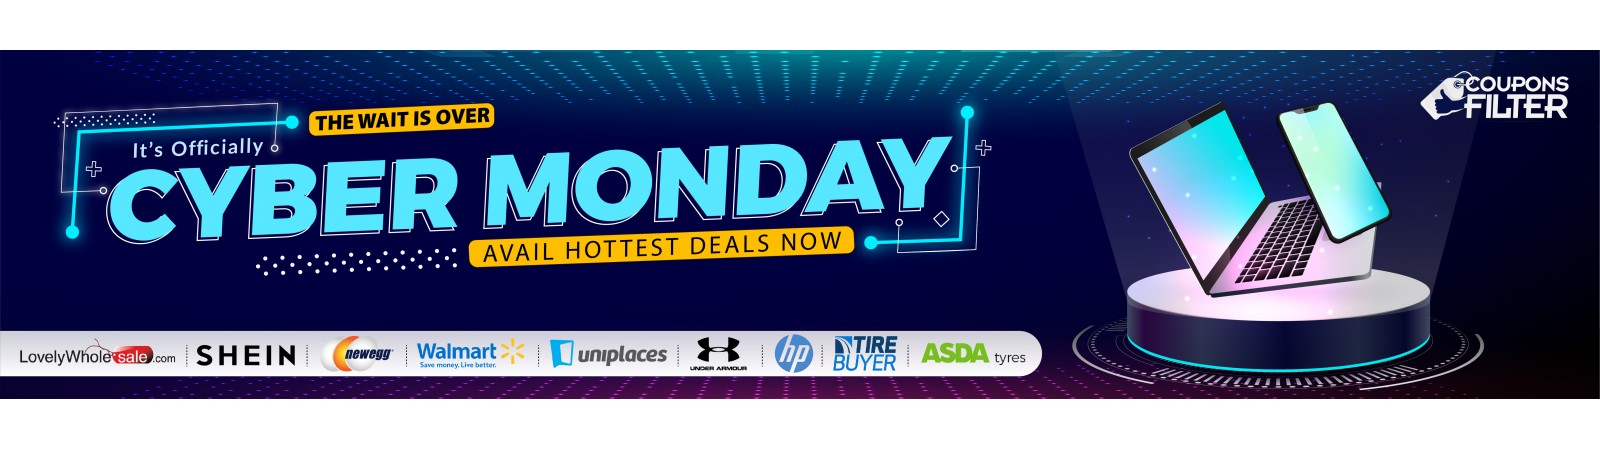 cyber-monday-coupons-code